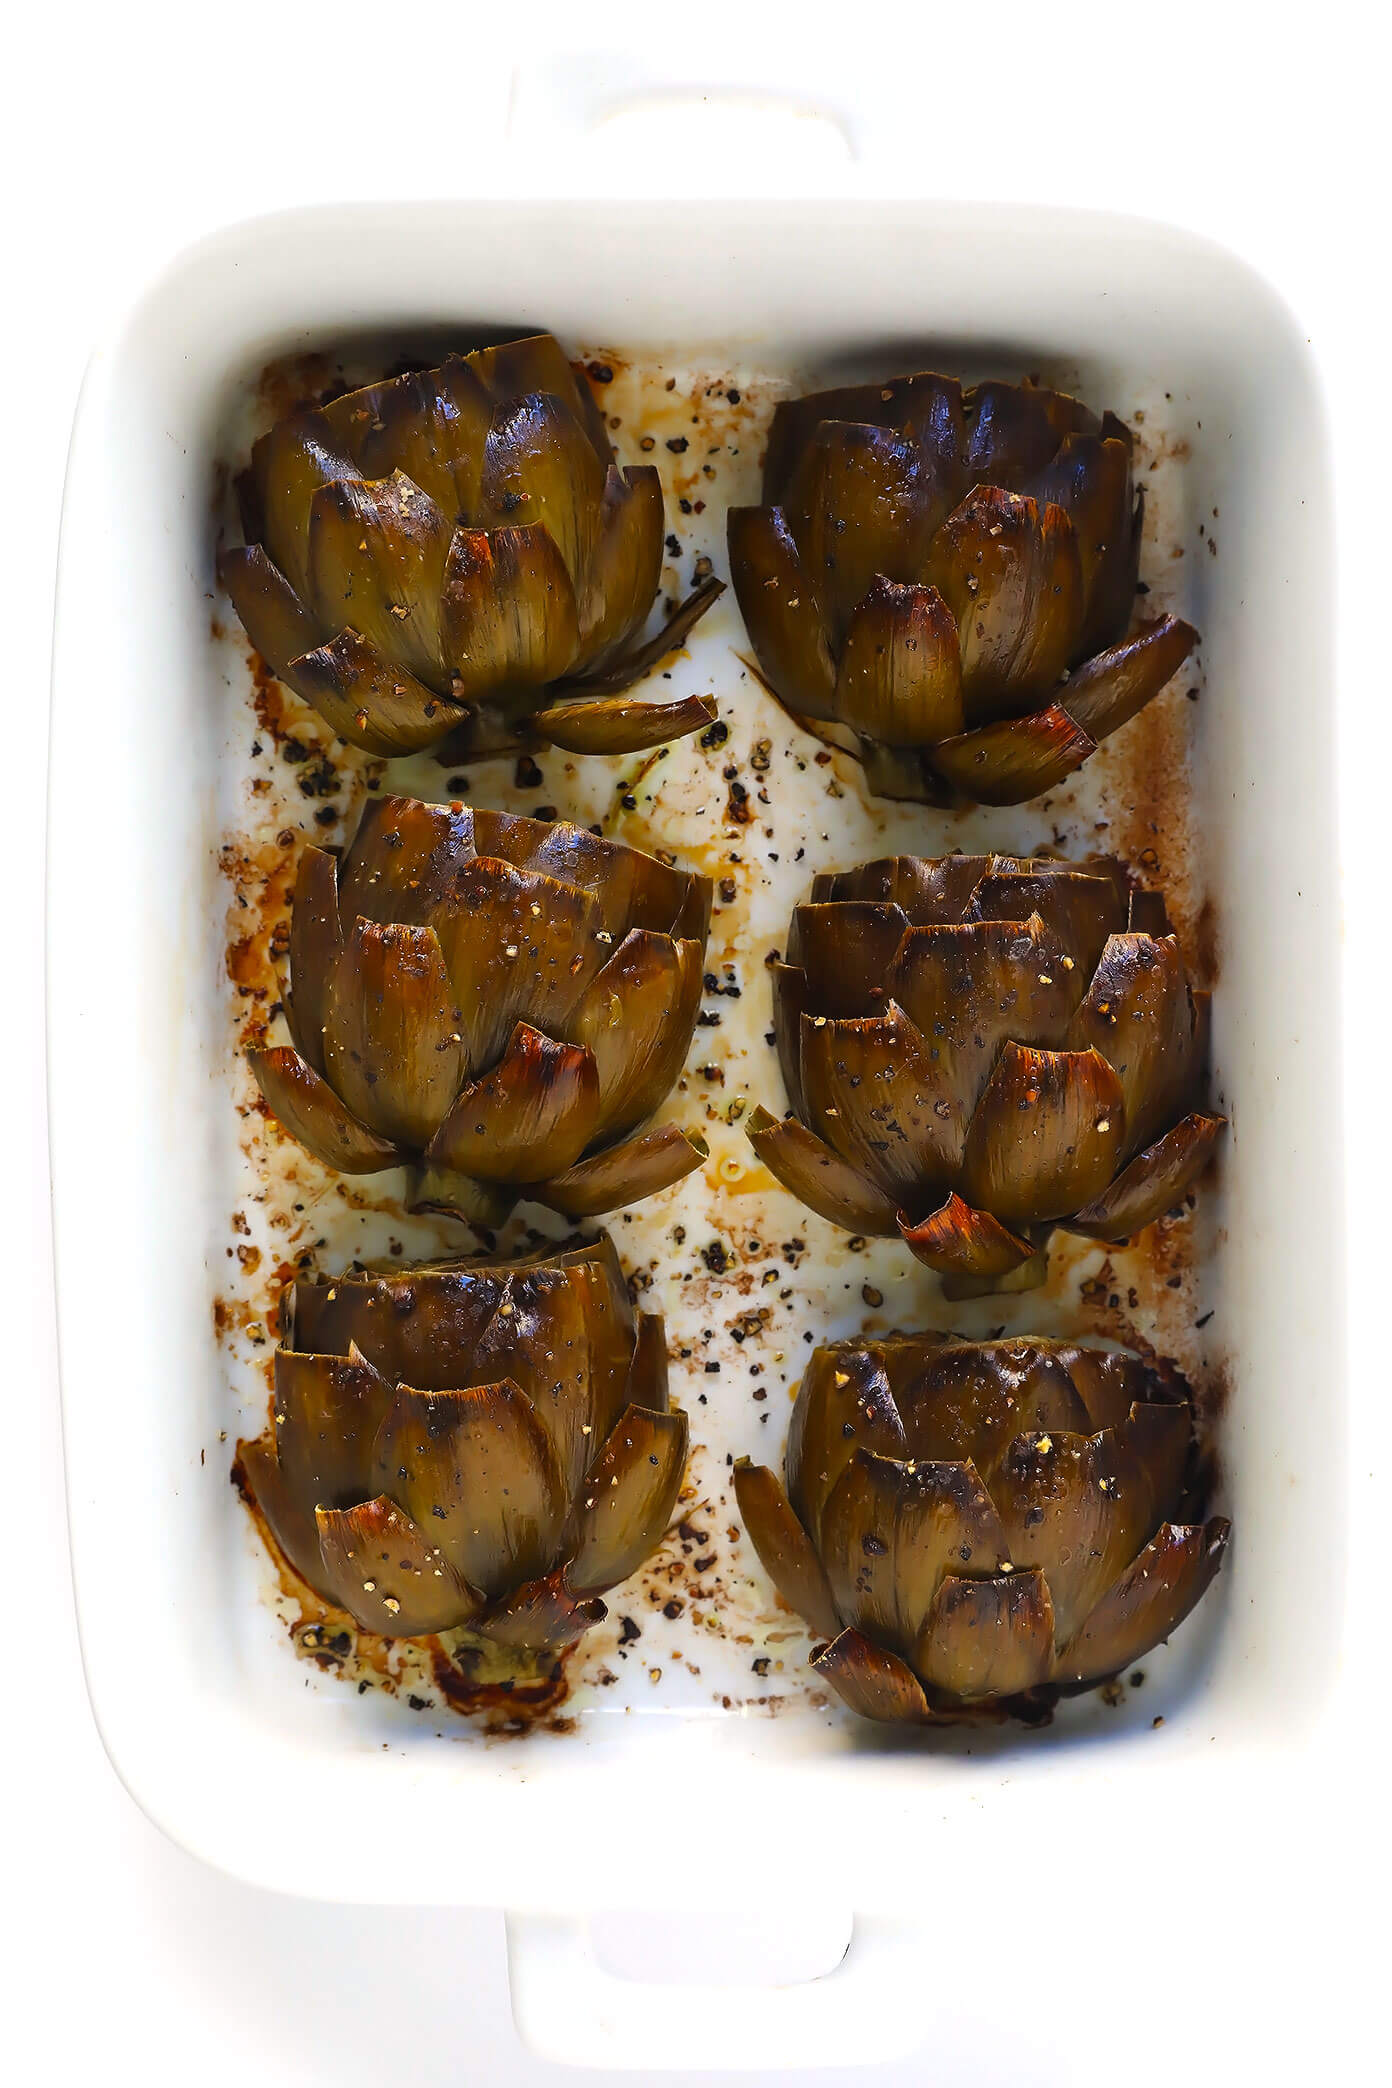 roasted artichokes in white tray